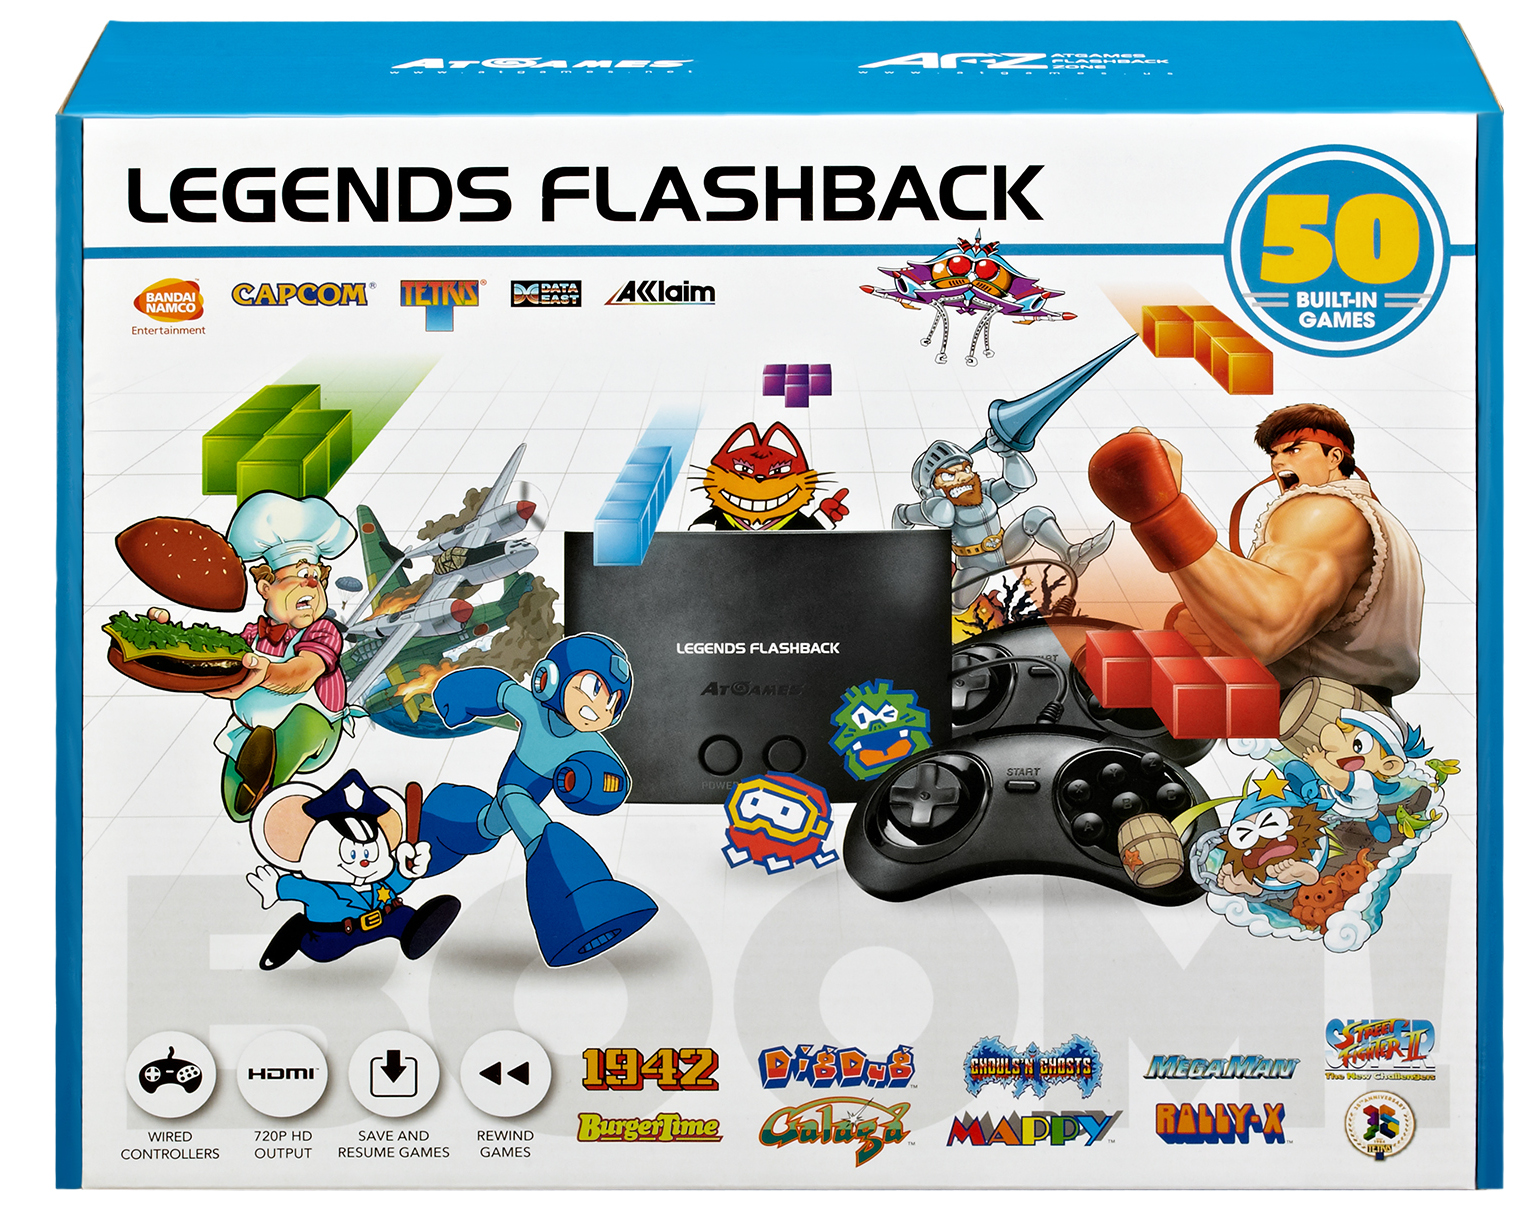 The Edge: AtGames Launches Their Retro Inspired Legends Flashback Console